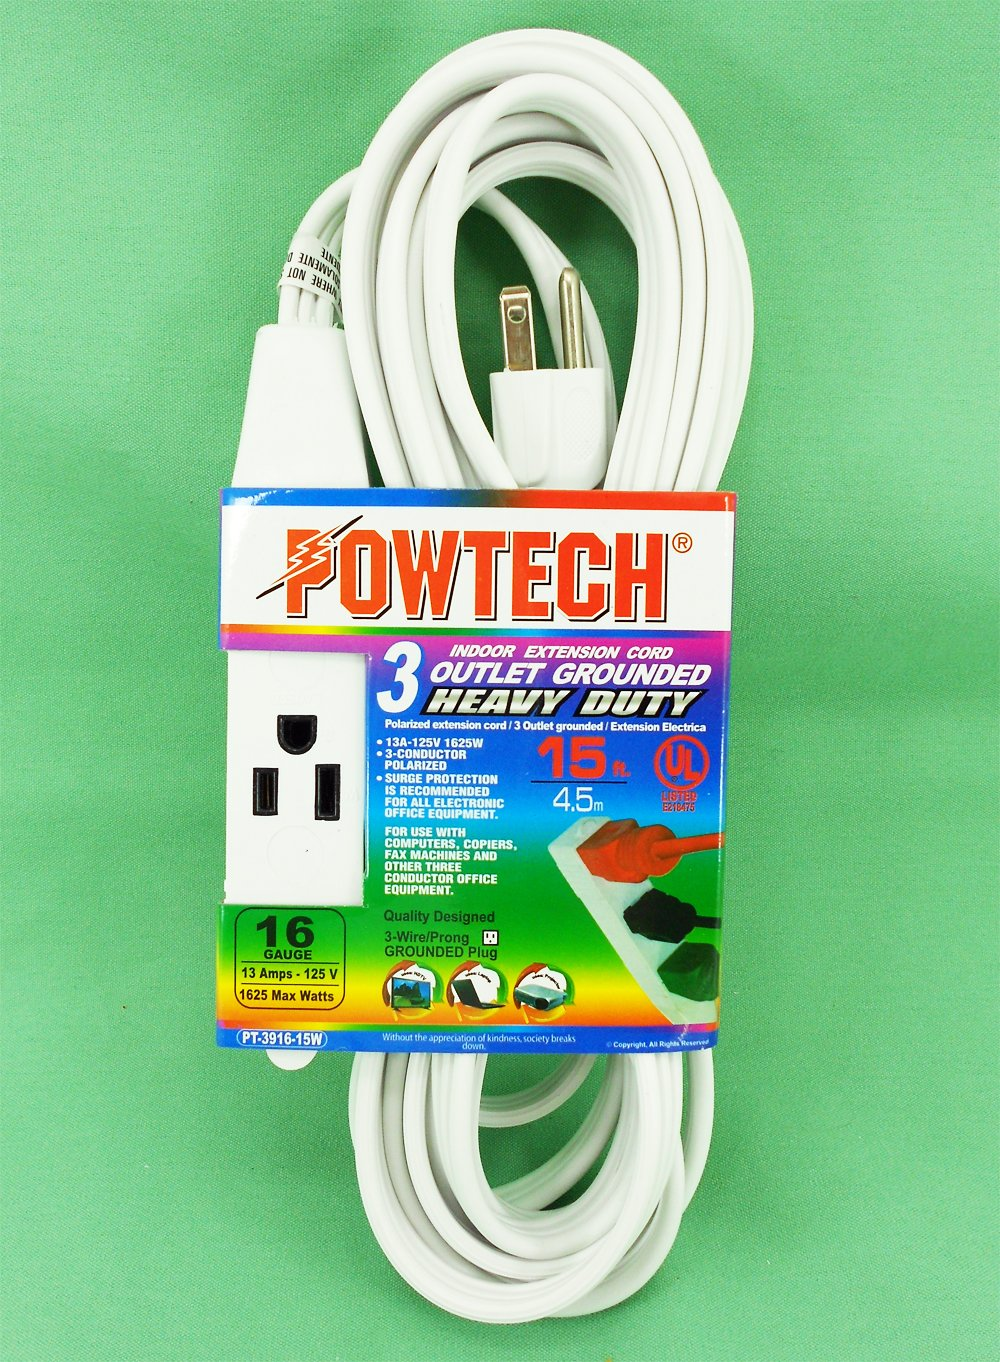 Powtech Heavy Duty 3 Outlet Grounded Indoor Home Office Extention Polarized Wiring Cord 12 Feet 16 Gauge Spt Awg 125v 1625 Watt Conducter